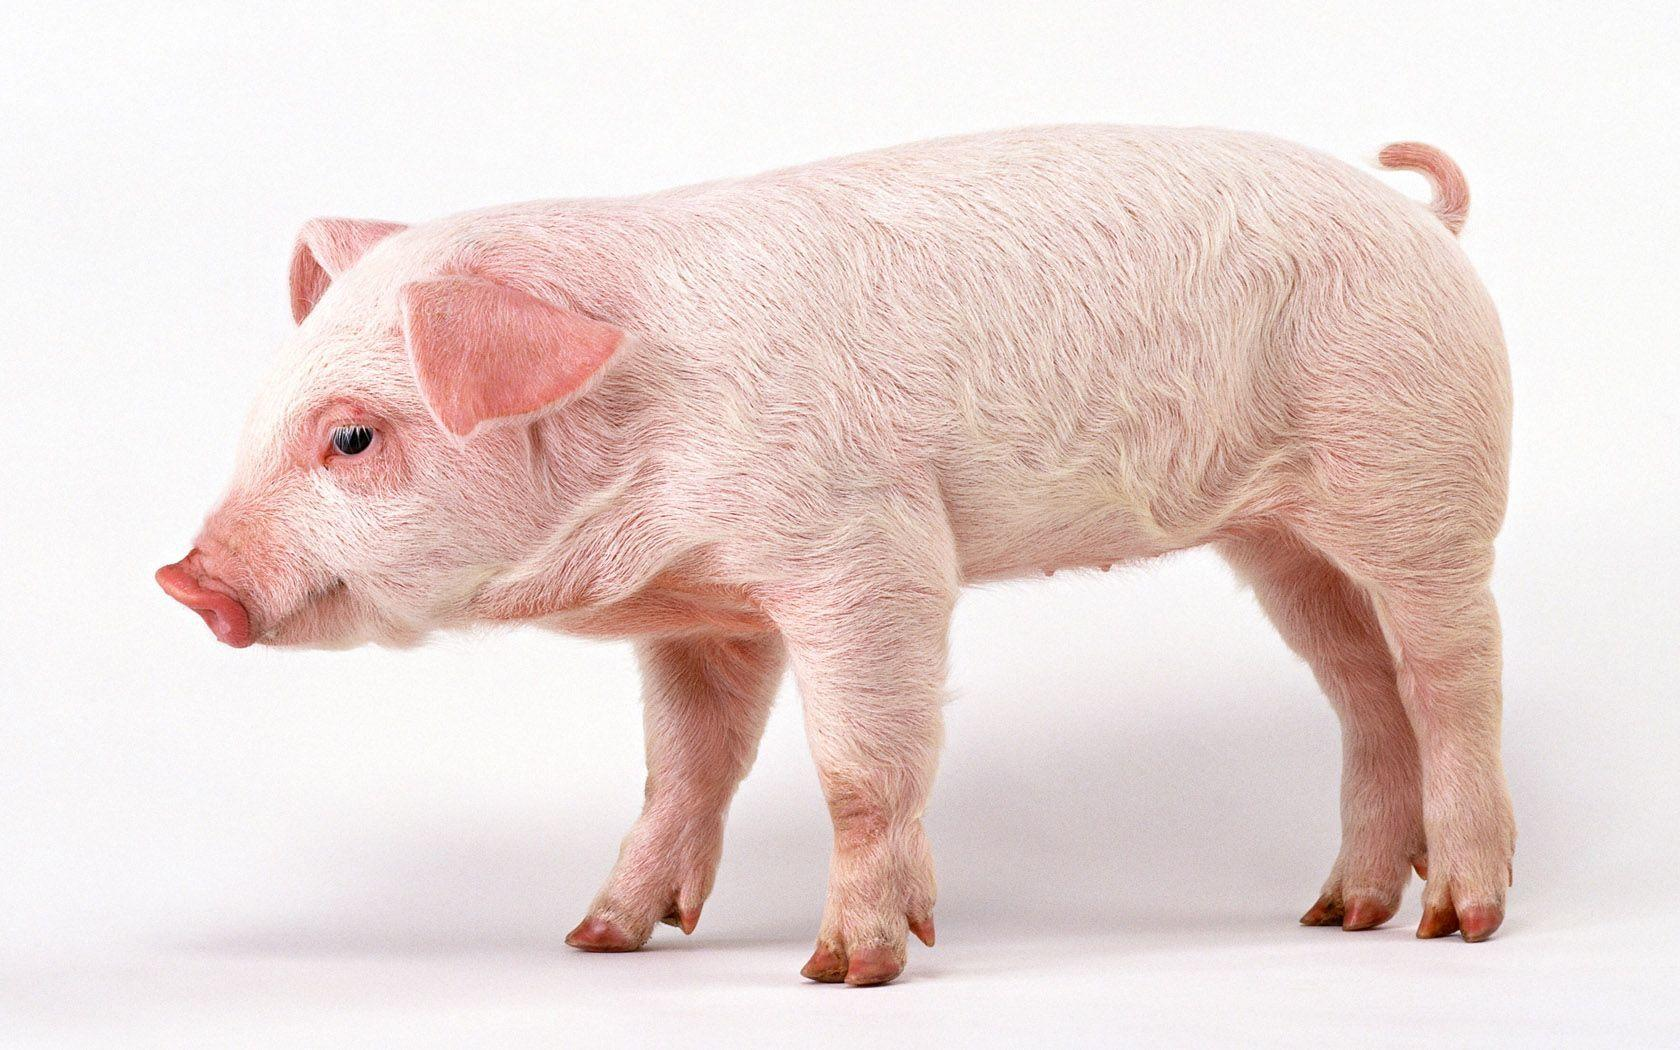 41 Pig HD Wallpapers | Backgrounds - Wallpaper Abyss